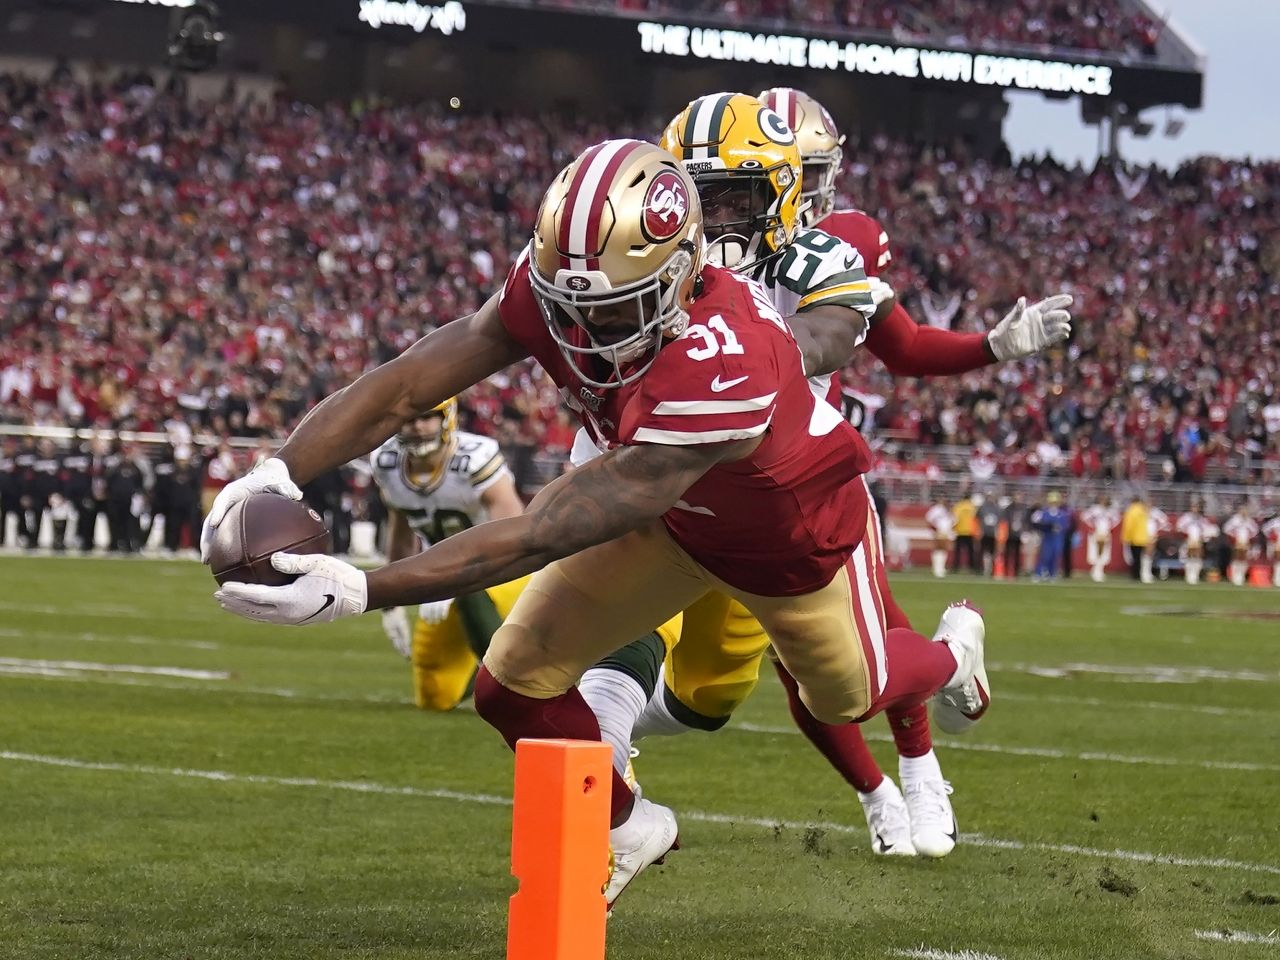 49ers Roll Past Packers To Reach 7th Super Bowl National Football League News Raheem Mostert Rushed For 220 Yards A In 2020 49ers National Football League Super Bowl